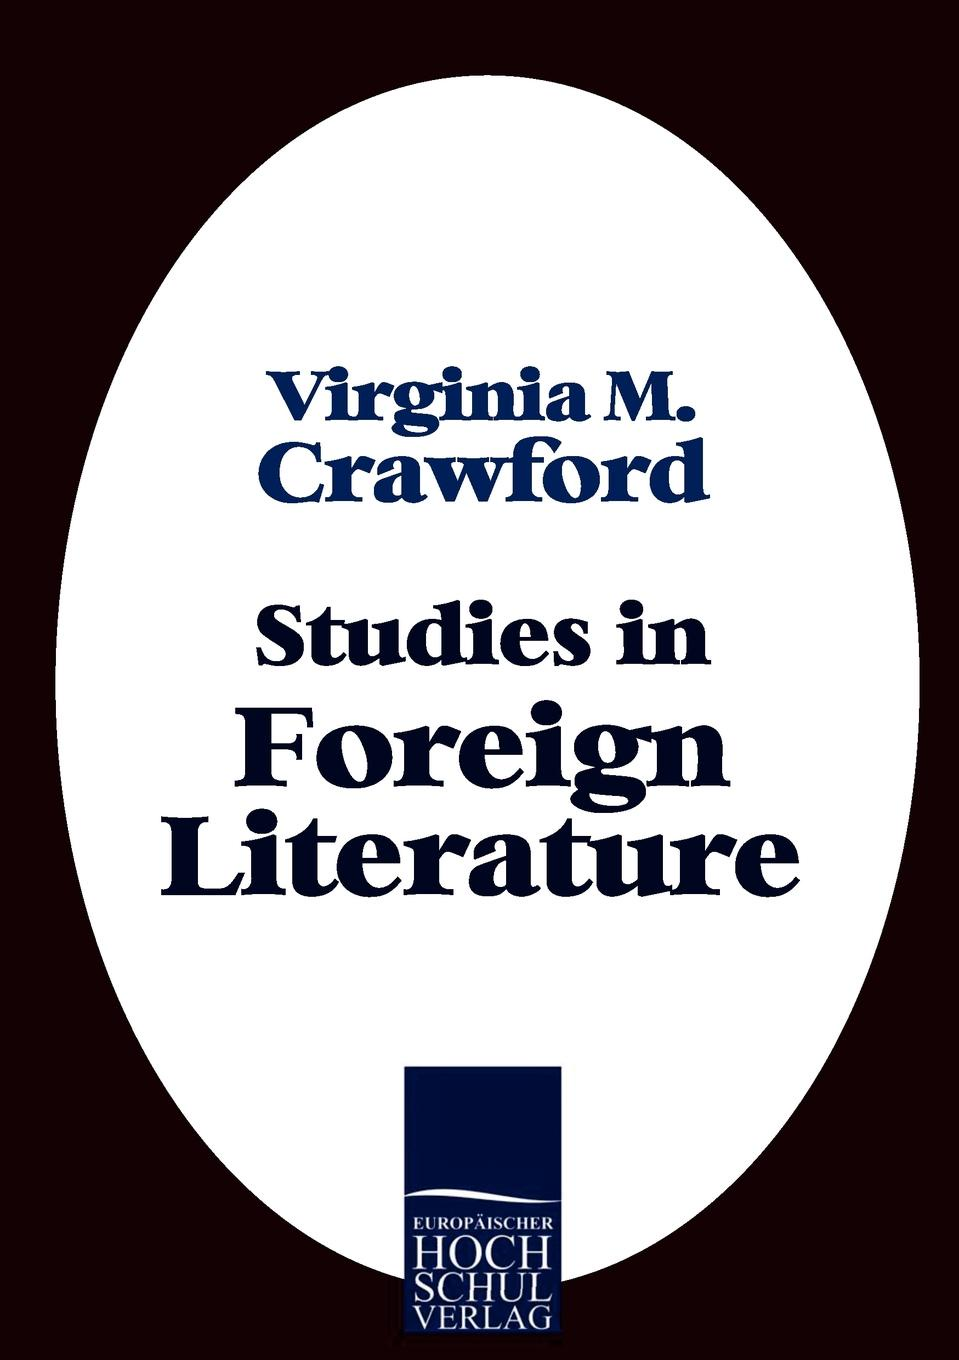 все цены на Virginia M. Crawford Studies in Foreign Literature онлайн